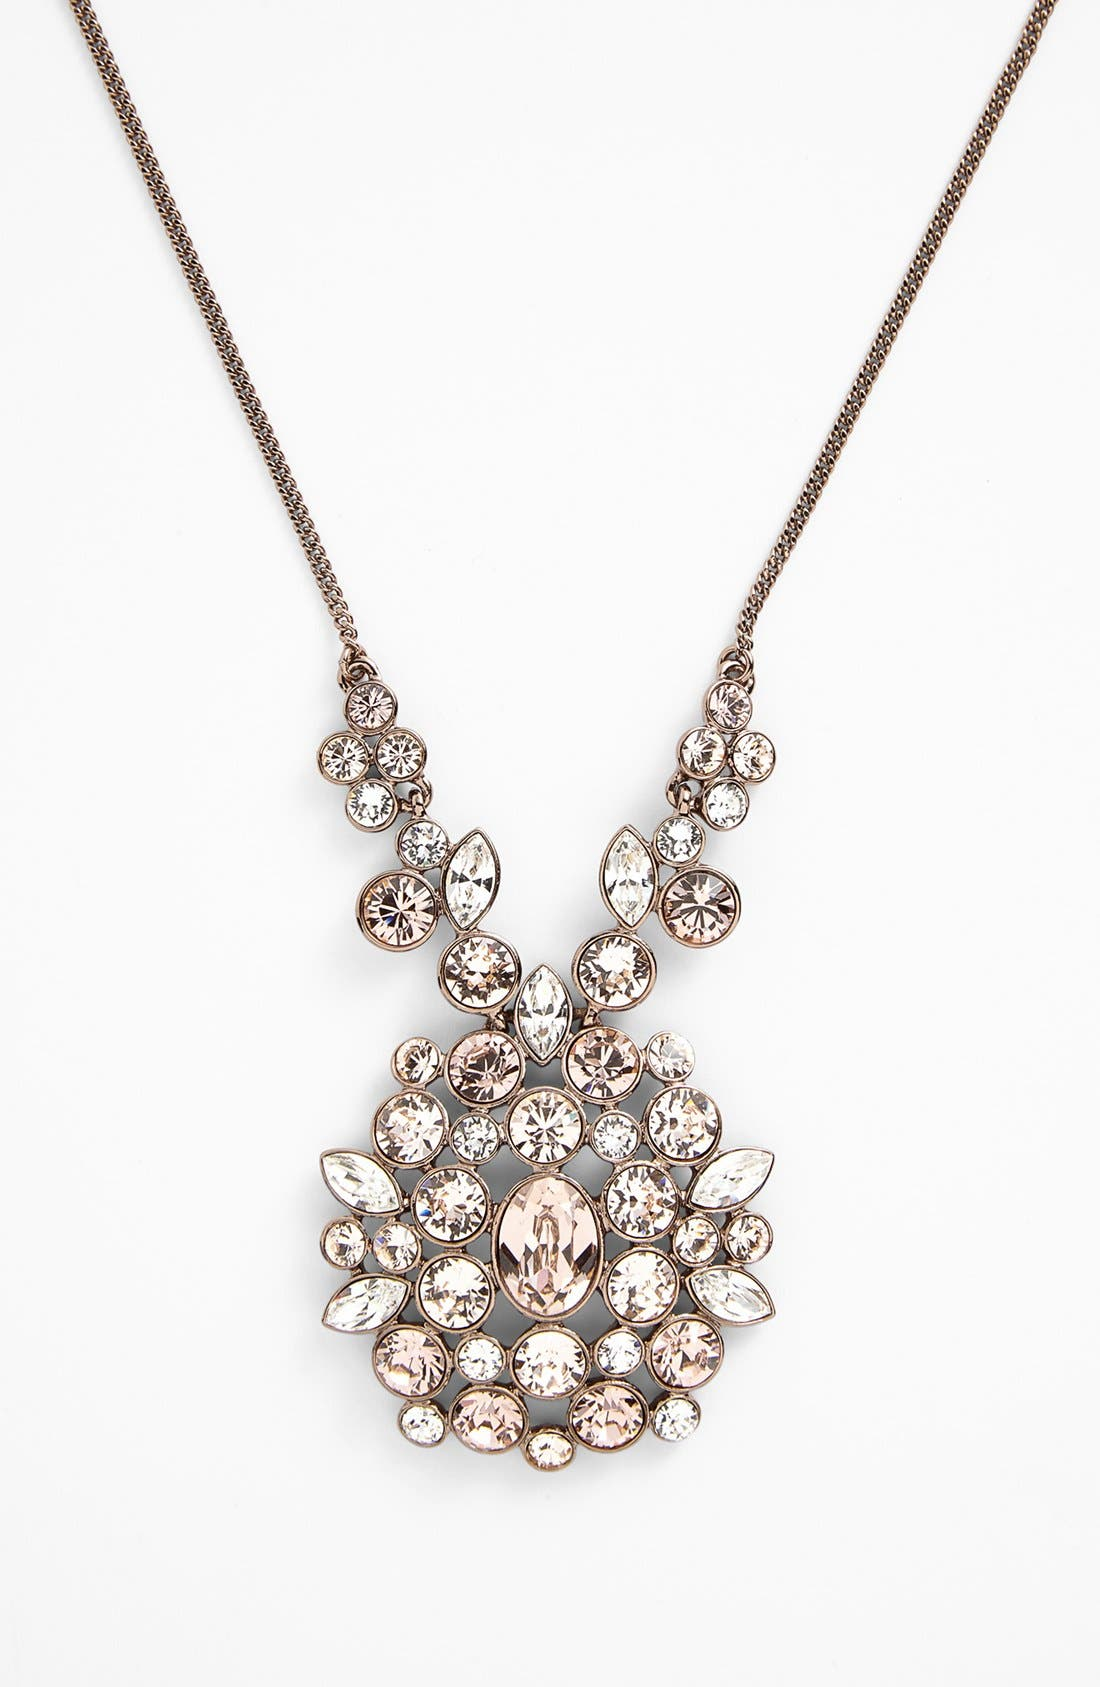 Main Image - Givenchy Statement Pendant Necklace